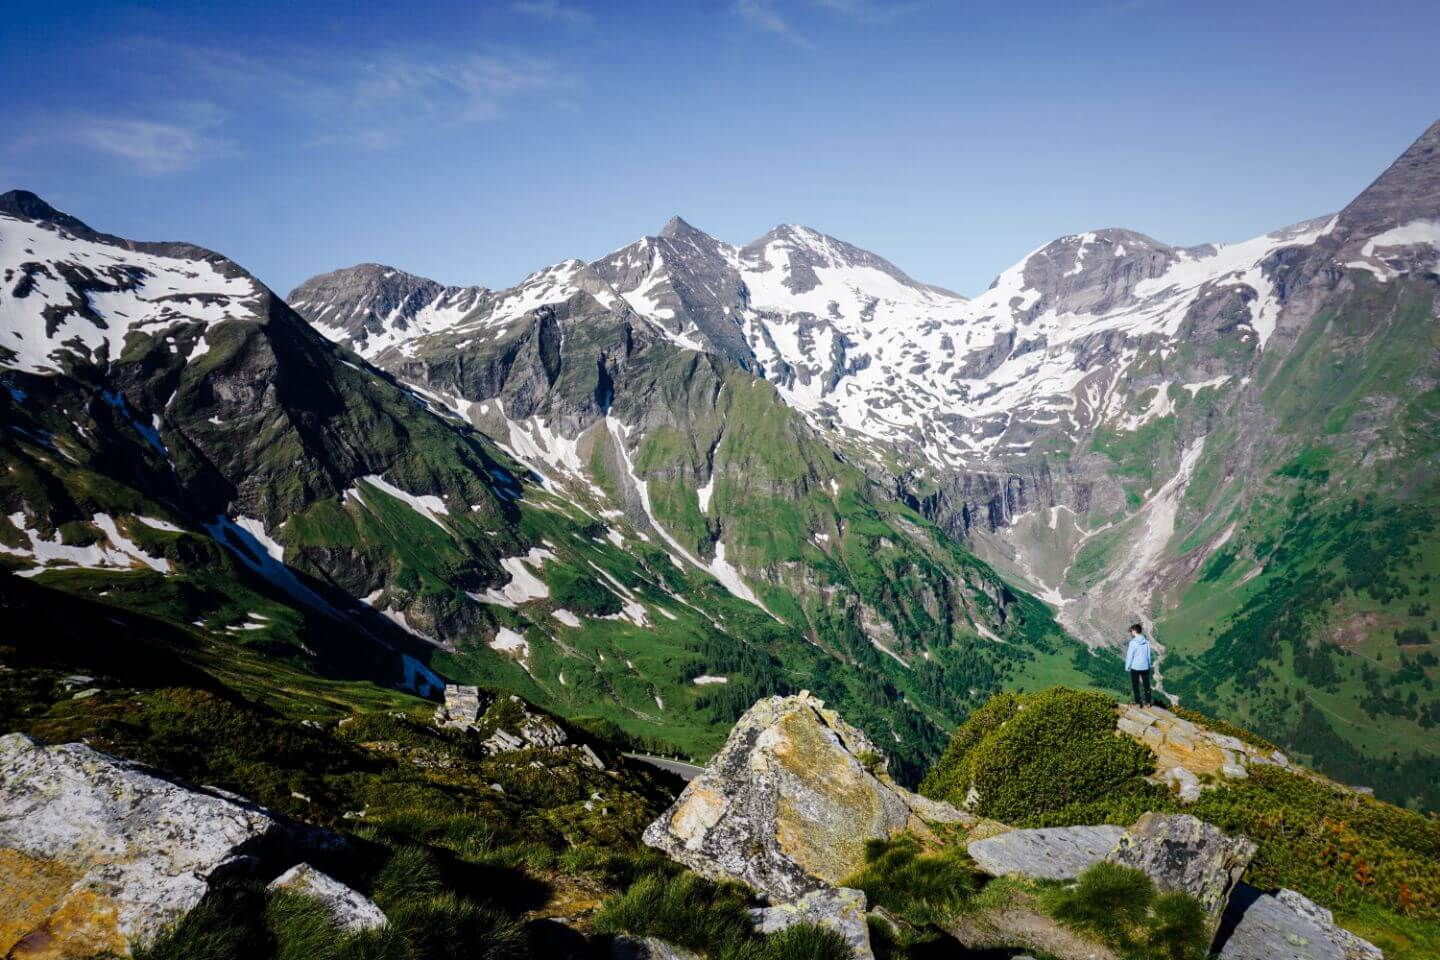 Grossglockner High Alpine Road in Hohe Tauern National Park, Austria